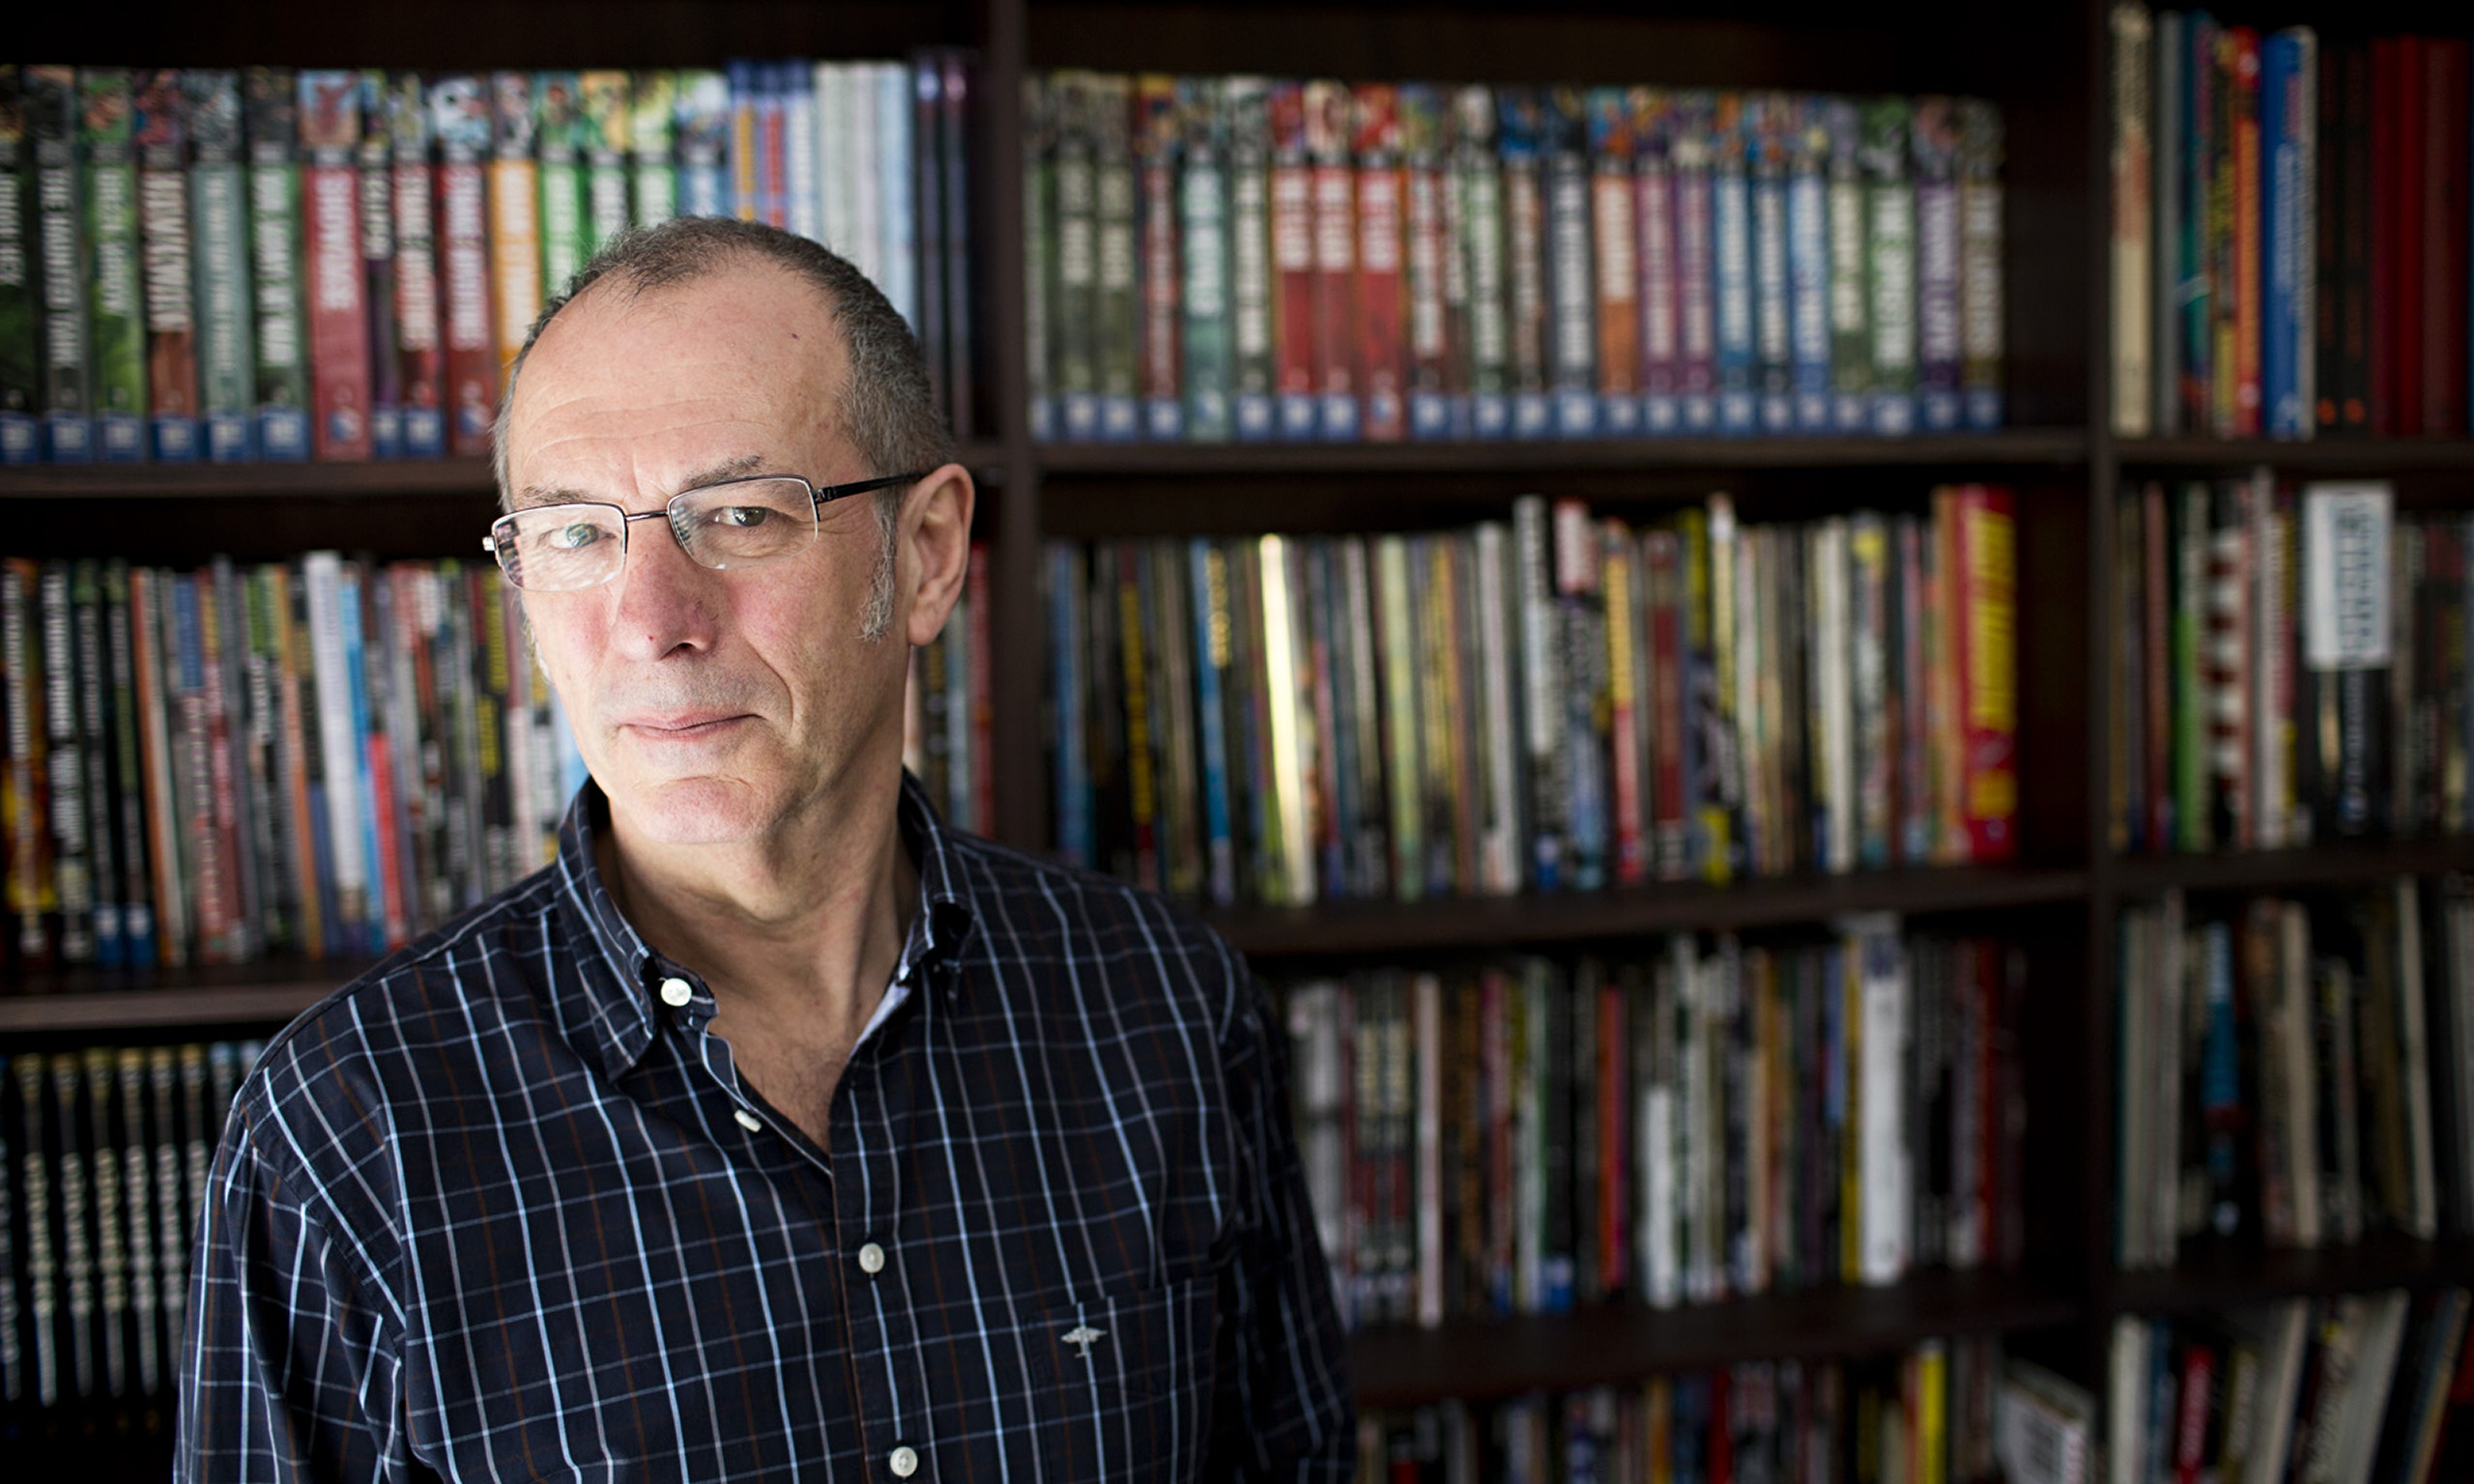 Dave Gibbons, graphic artist and Watchmen co-creator, who is now comic laureate.